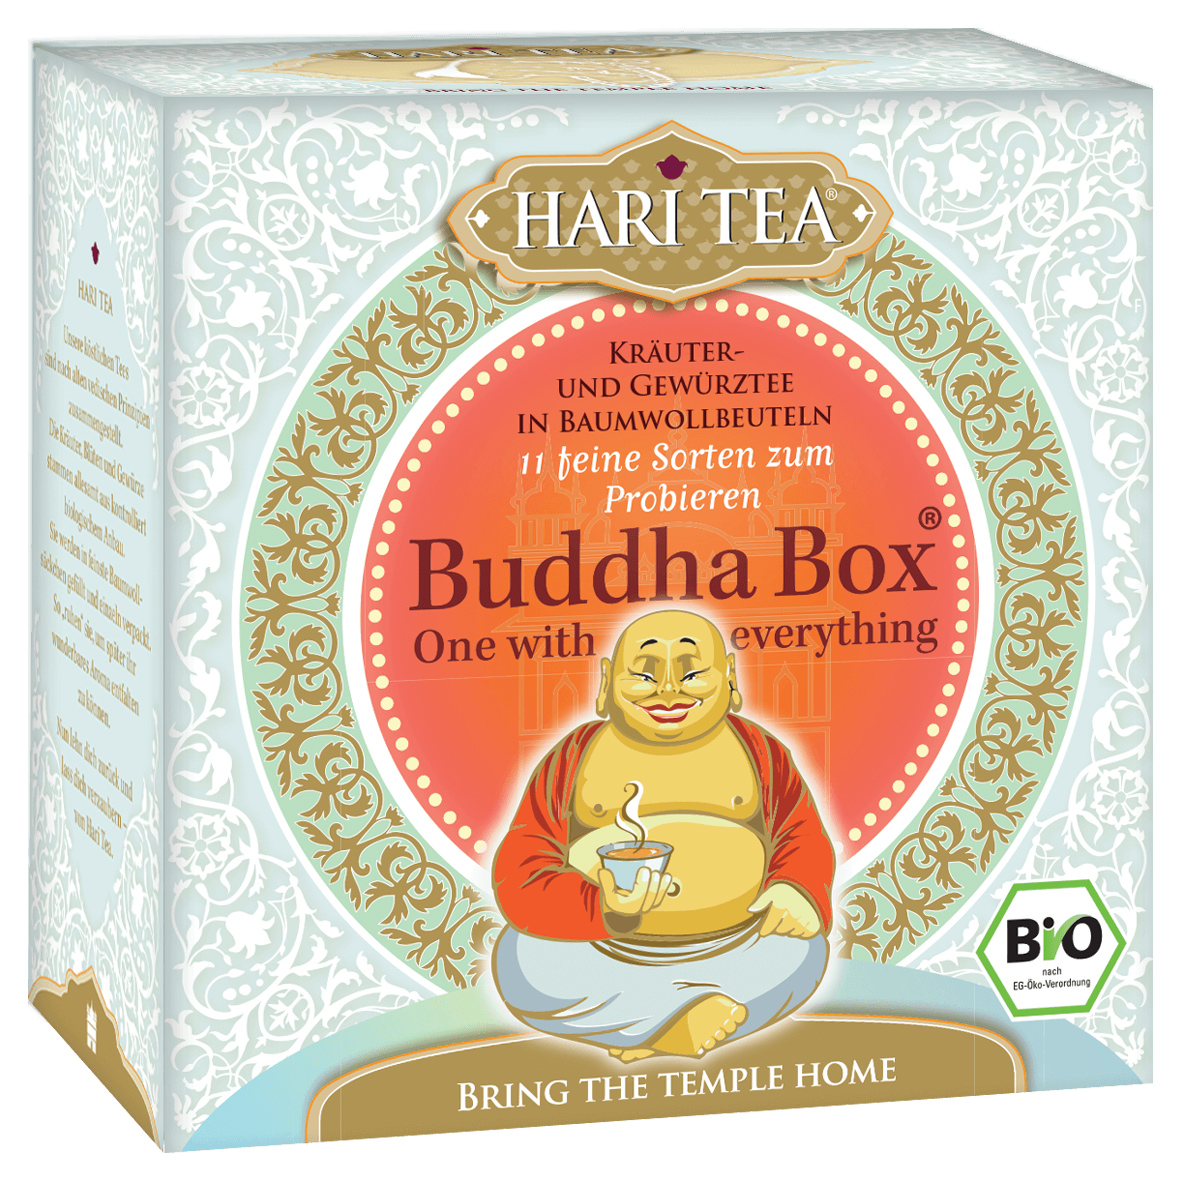 Buddha Box - All 11 flavours of Hari Tea